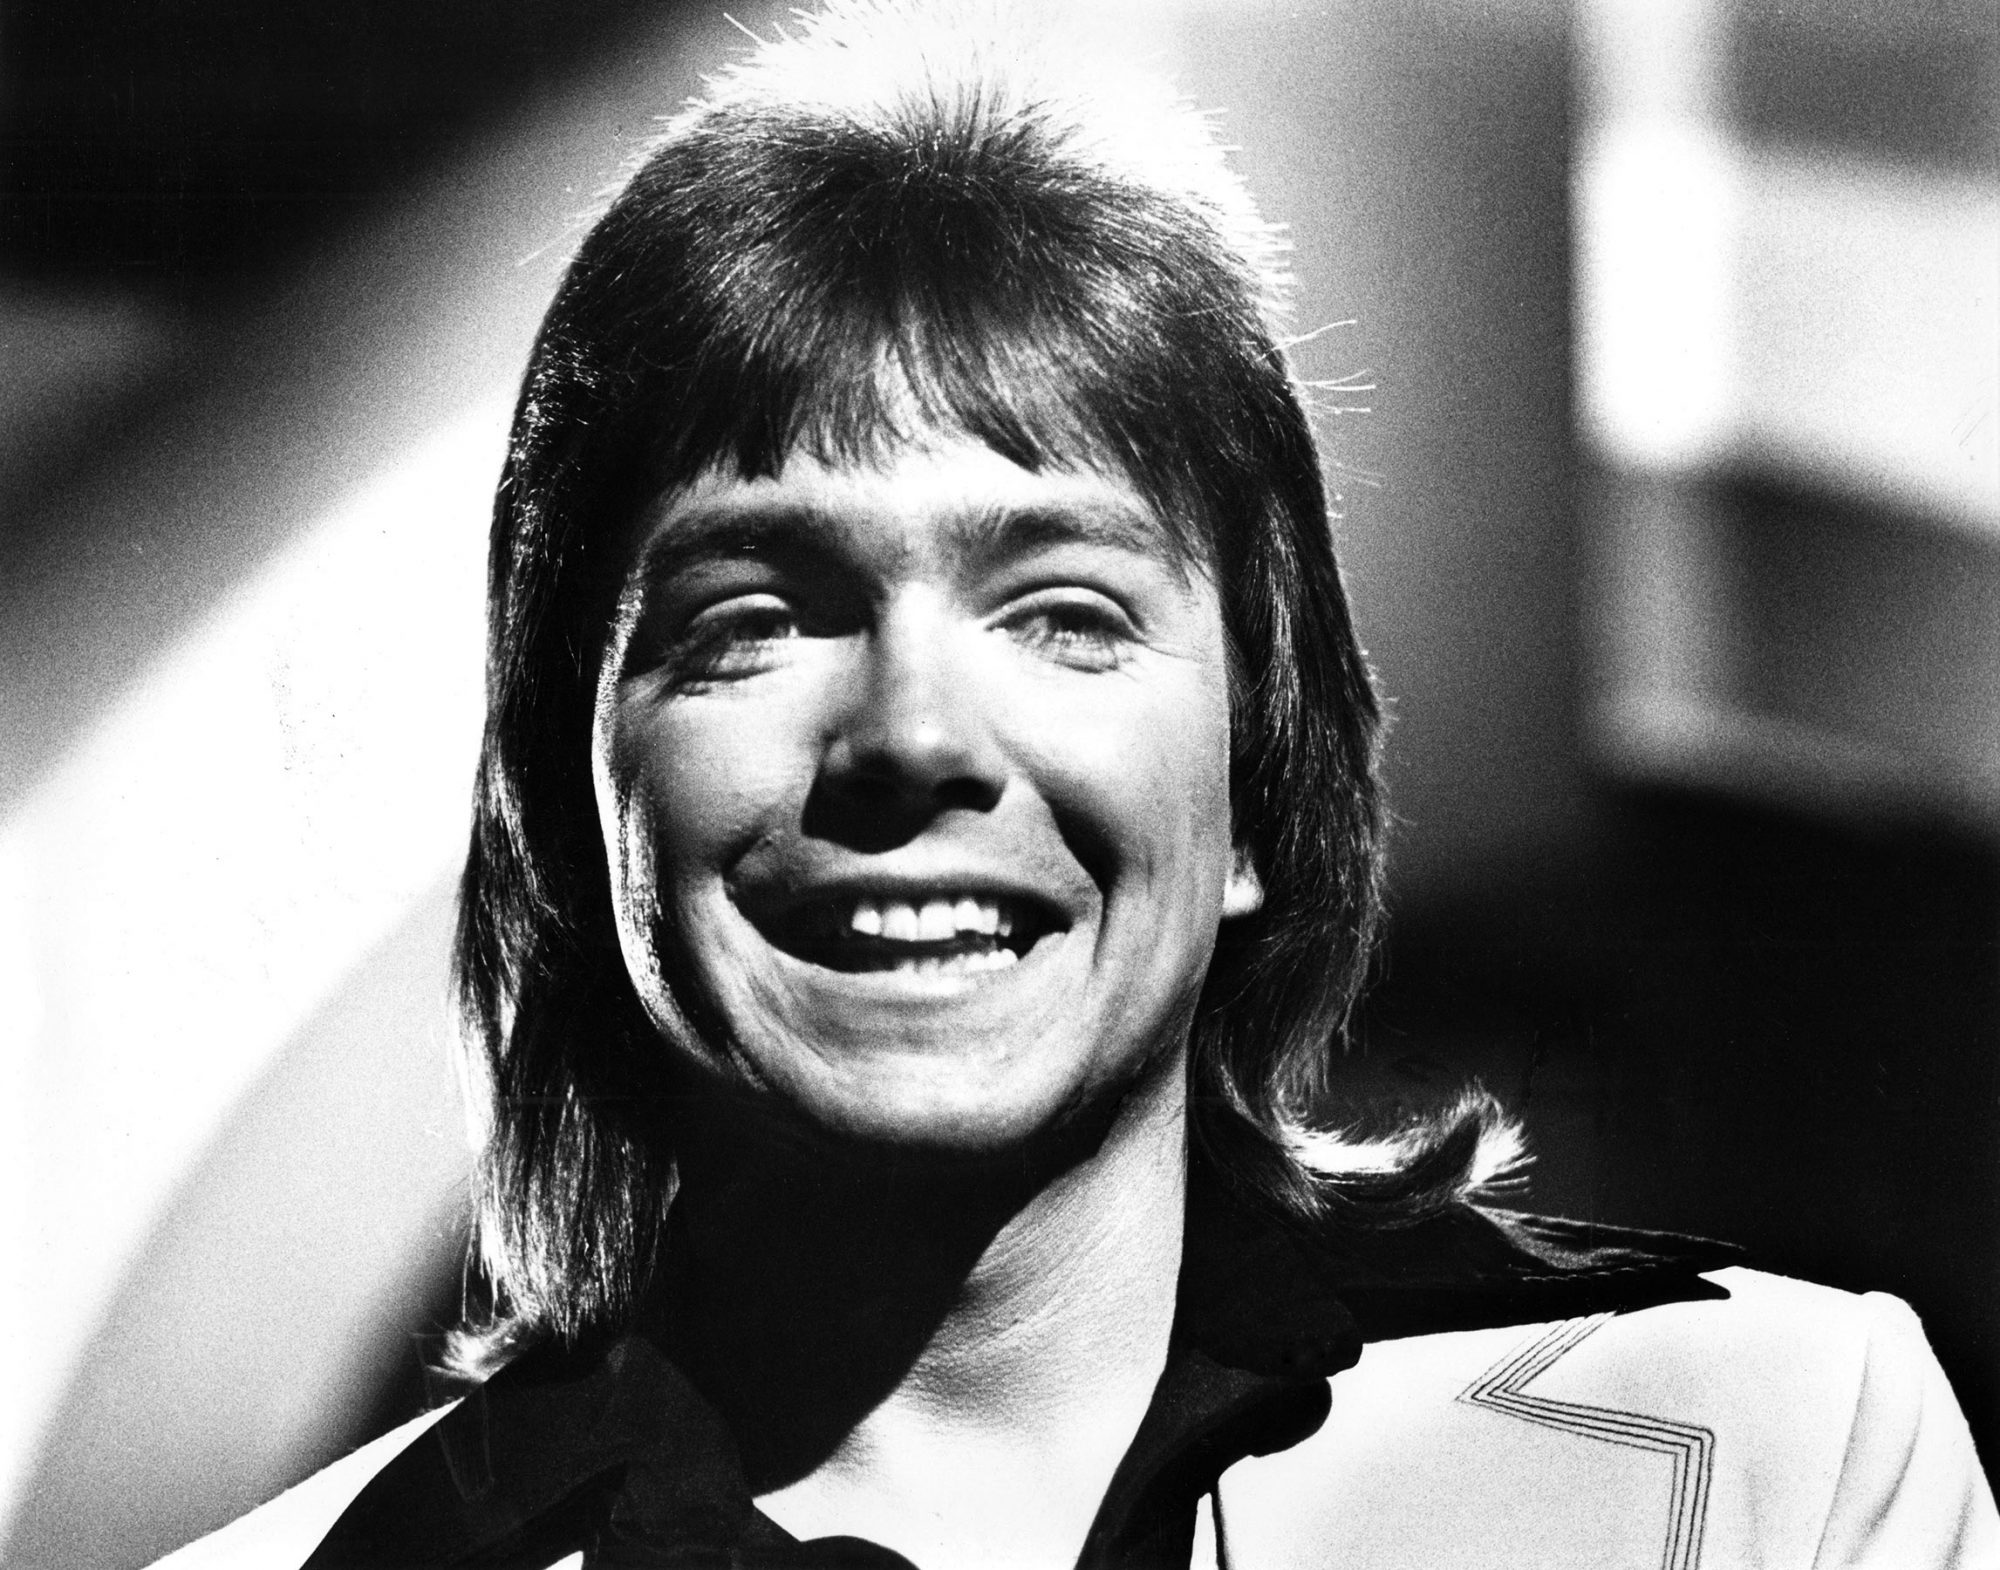 David Cassidy Performs Live In Amsterdam